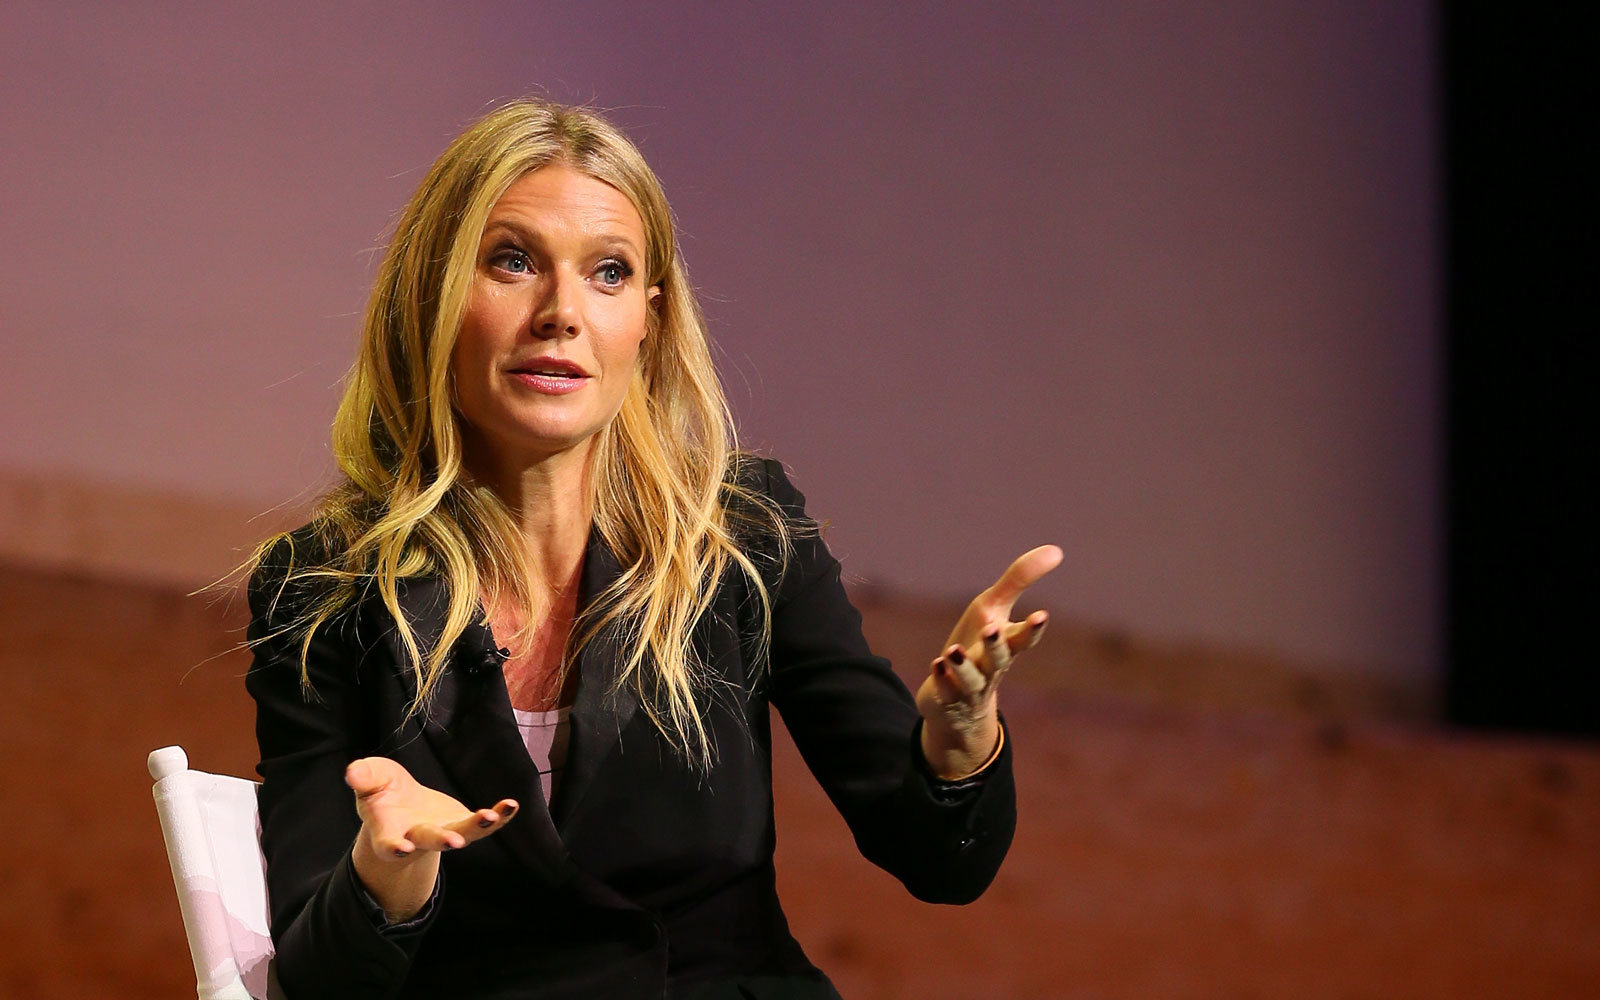 Gwyneth Paltrow's Goop Has Launched a Travel App Called 'G. Spotting'